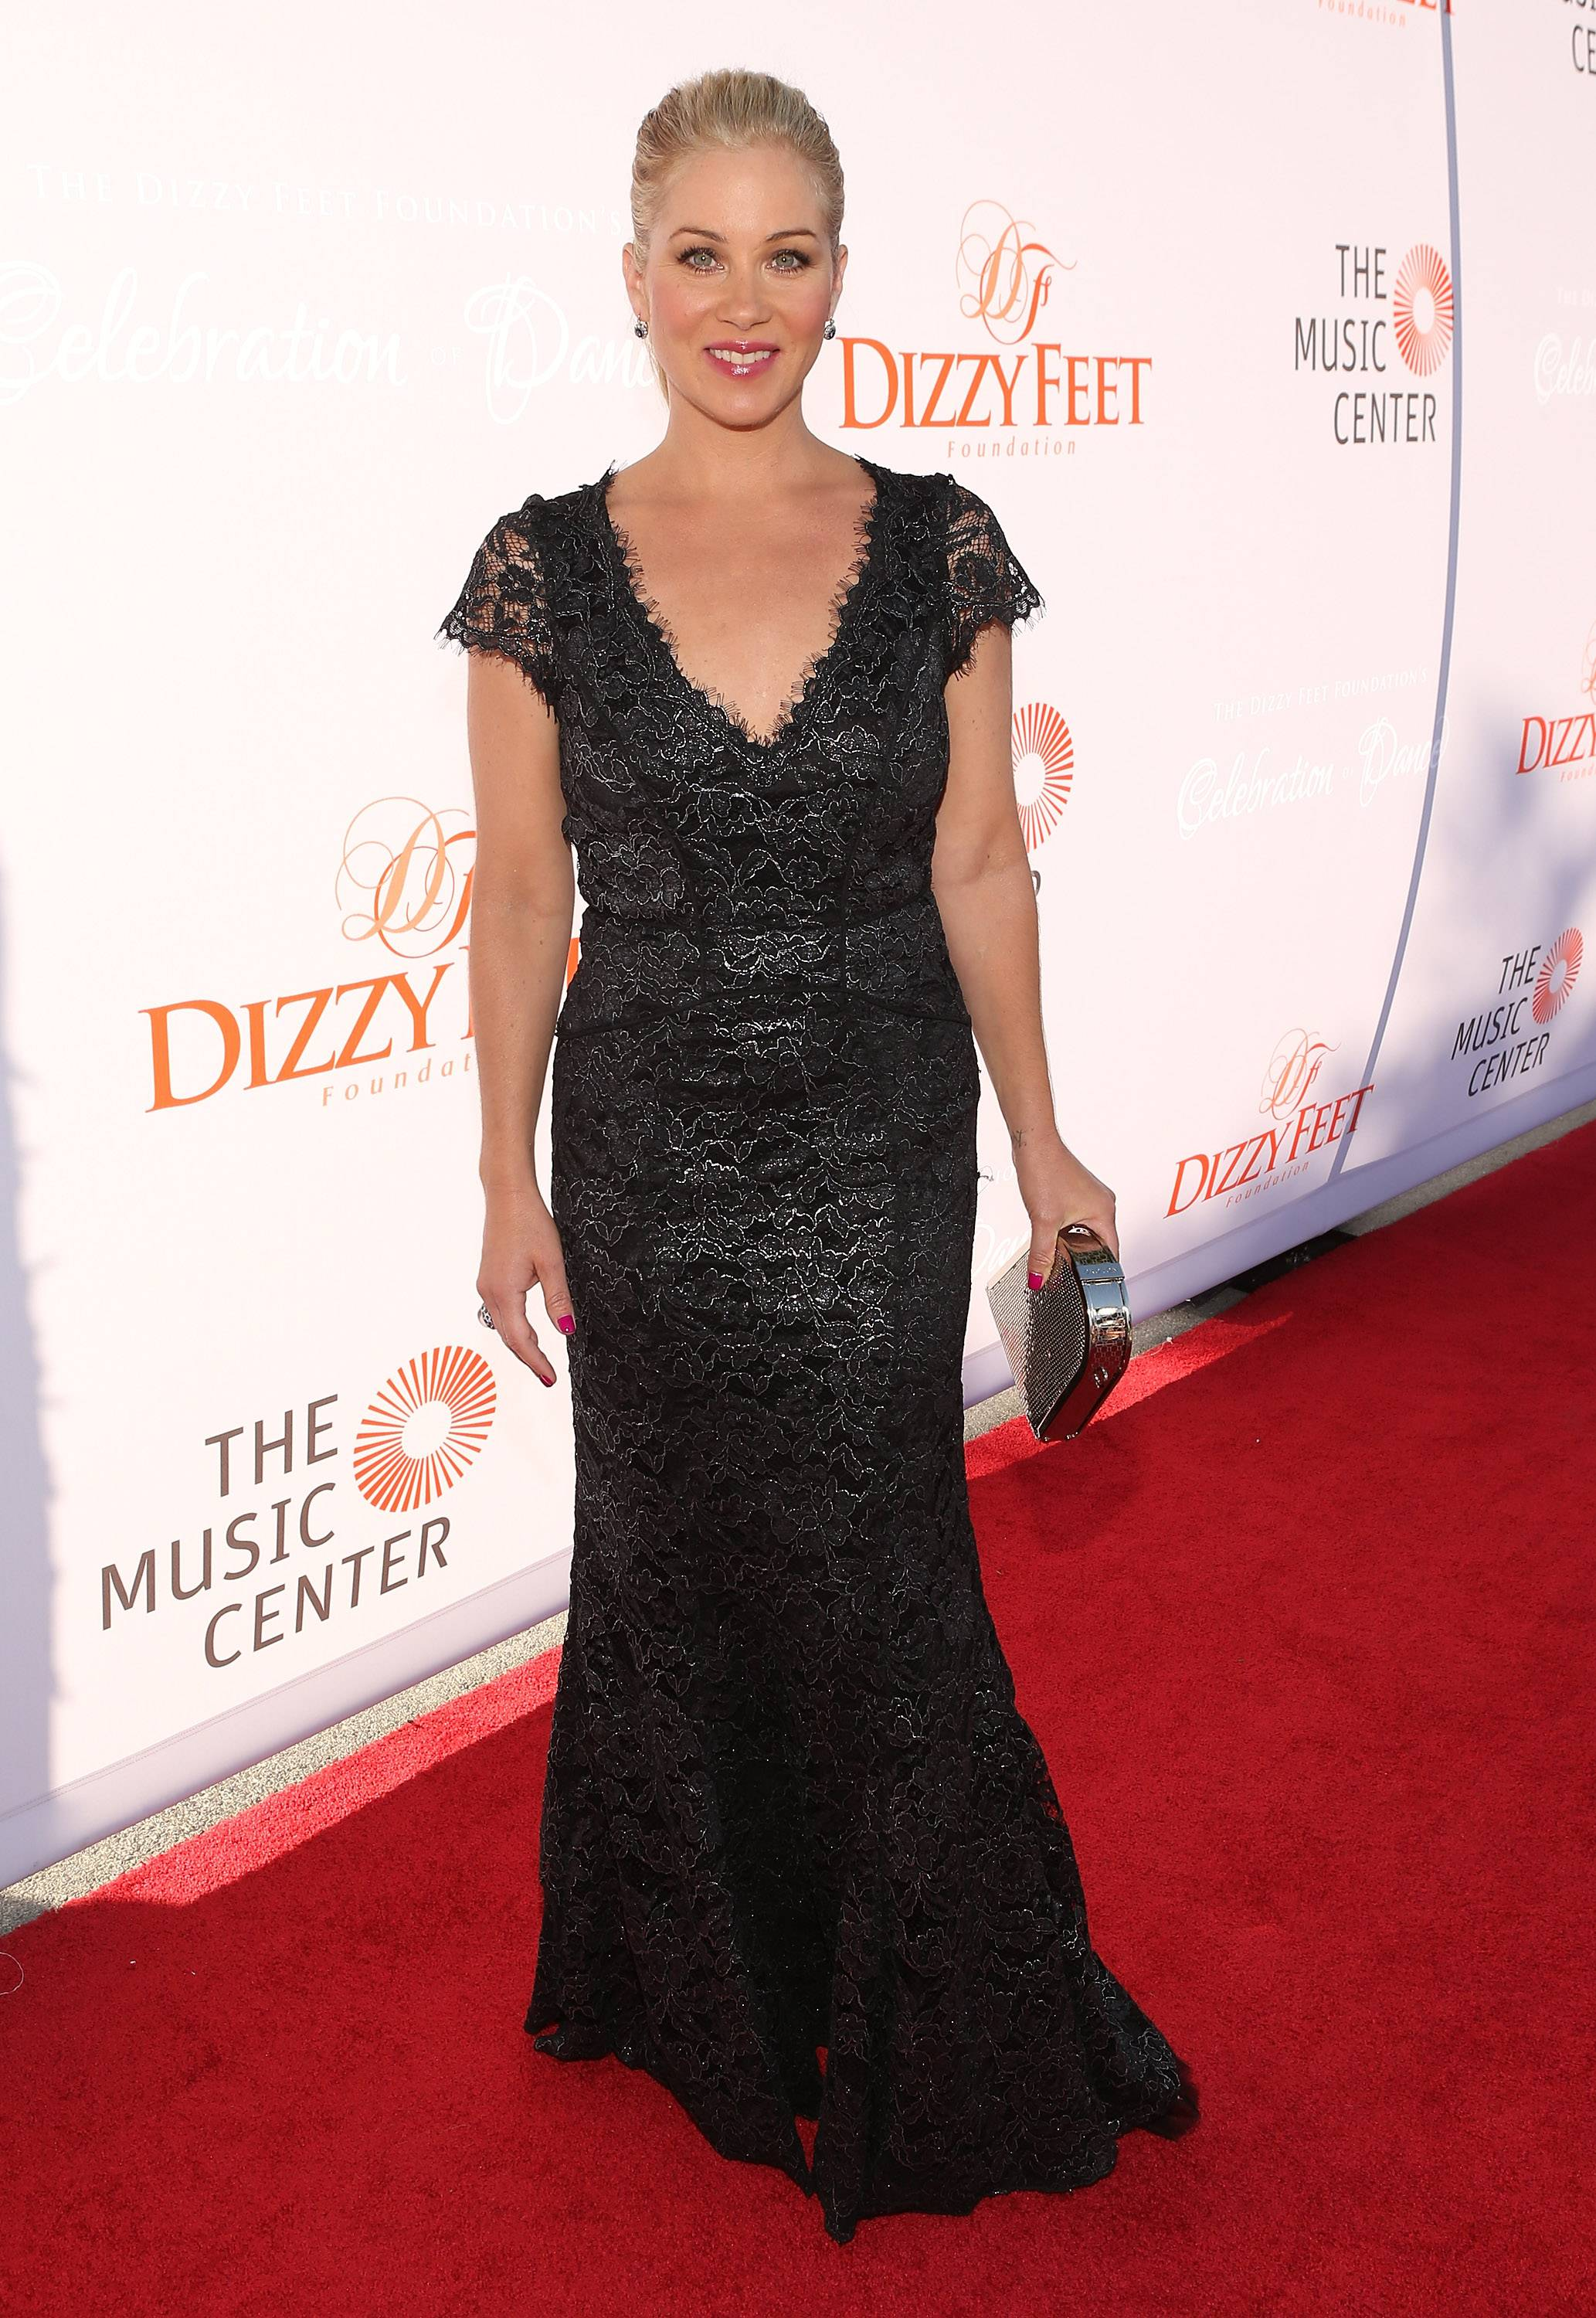 Dizzy Feet Foundation's Celebration Of Dance at The Music Center